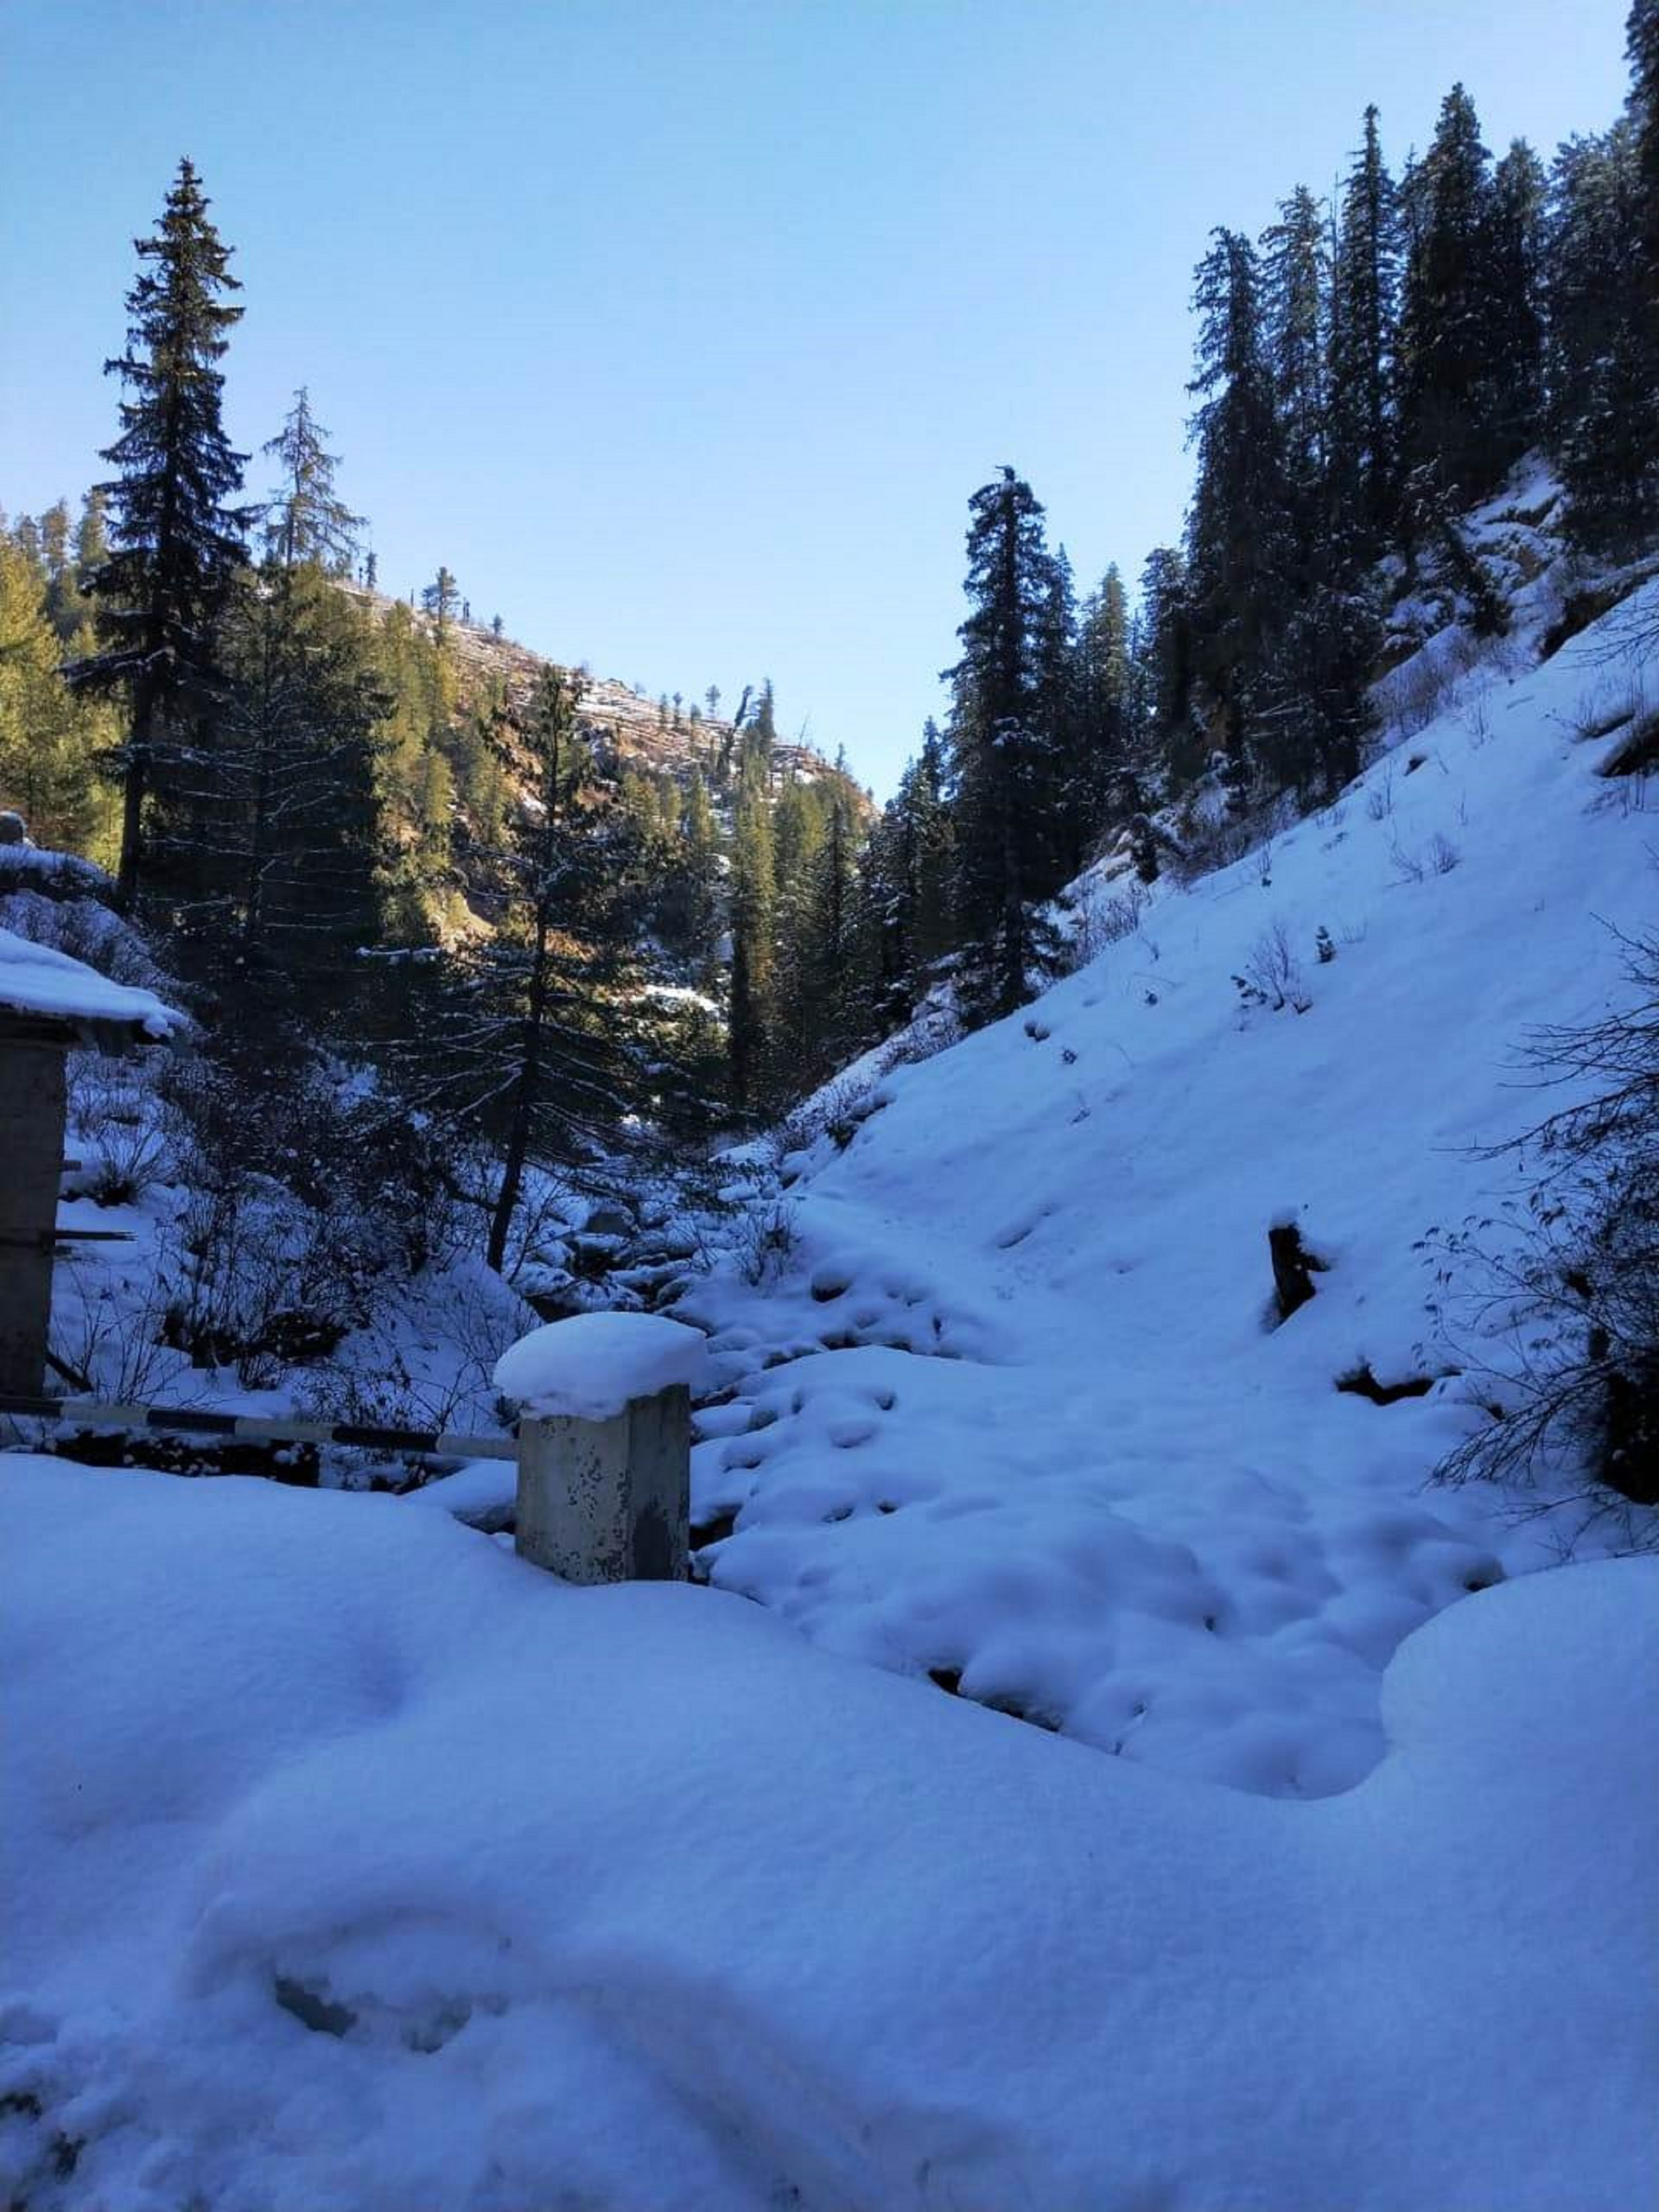 Snow cover in a hill station